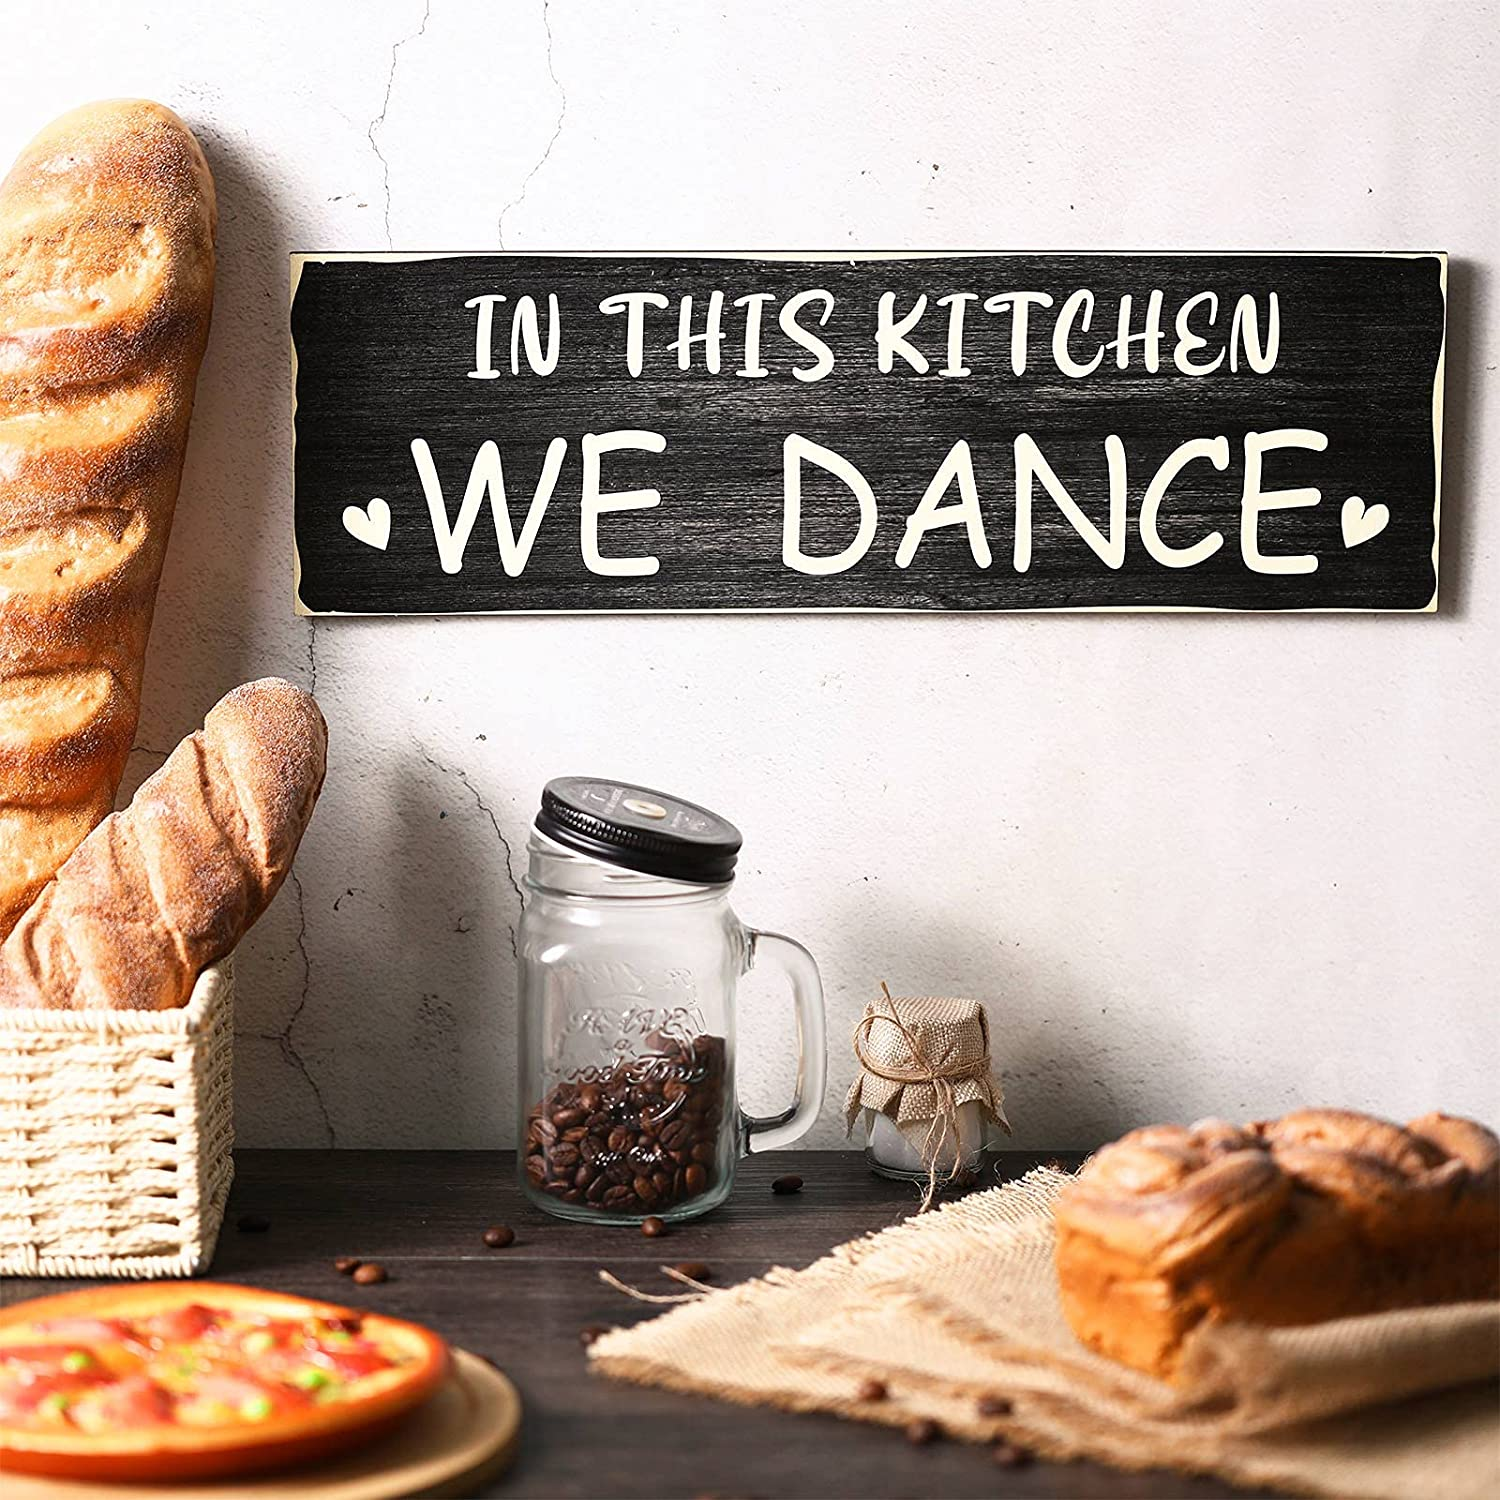 in This Kitchen We Dance Wood Sign Farmhouse Rustic Wall Sign Plaque Wooden Hanging Wall Decor Black Funny Kitchen Sign for Home Kitchen Dining Room Restaurant Coffee Shop 15.7 x 5.0 Inches